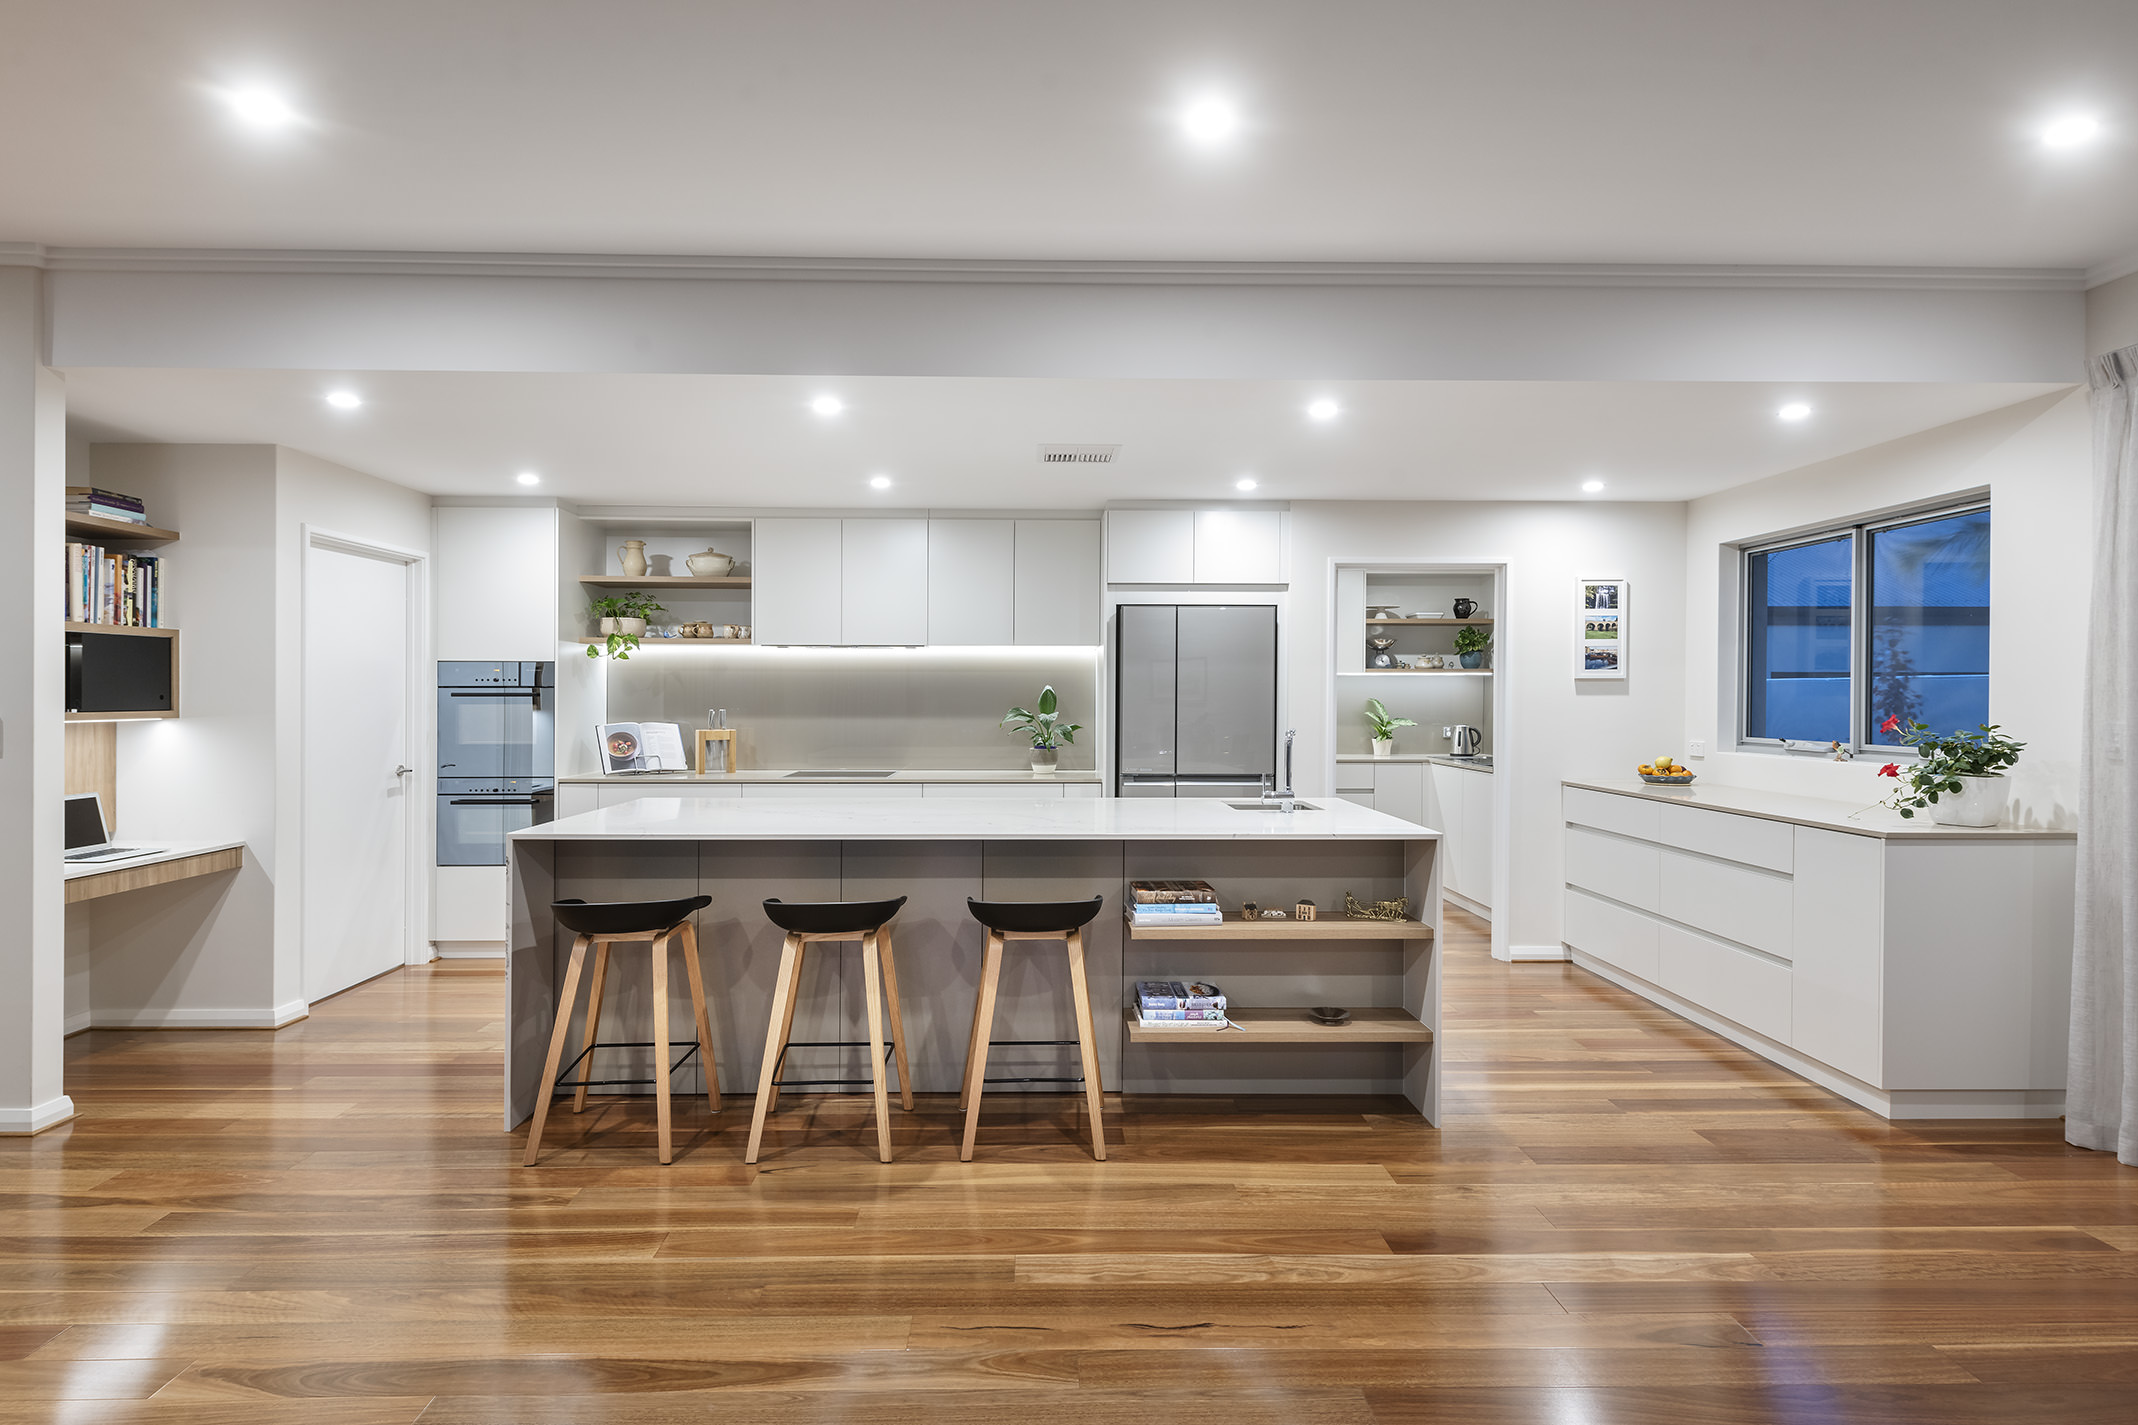 The kitchen is undoubtedly the focal point of this home; a spacious hub where warm memories are made, and family and friends can gather to share stories.